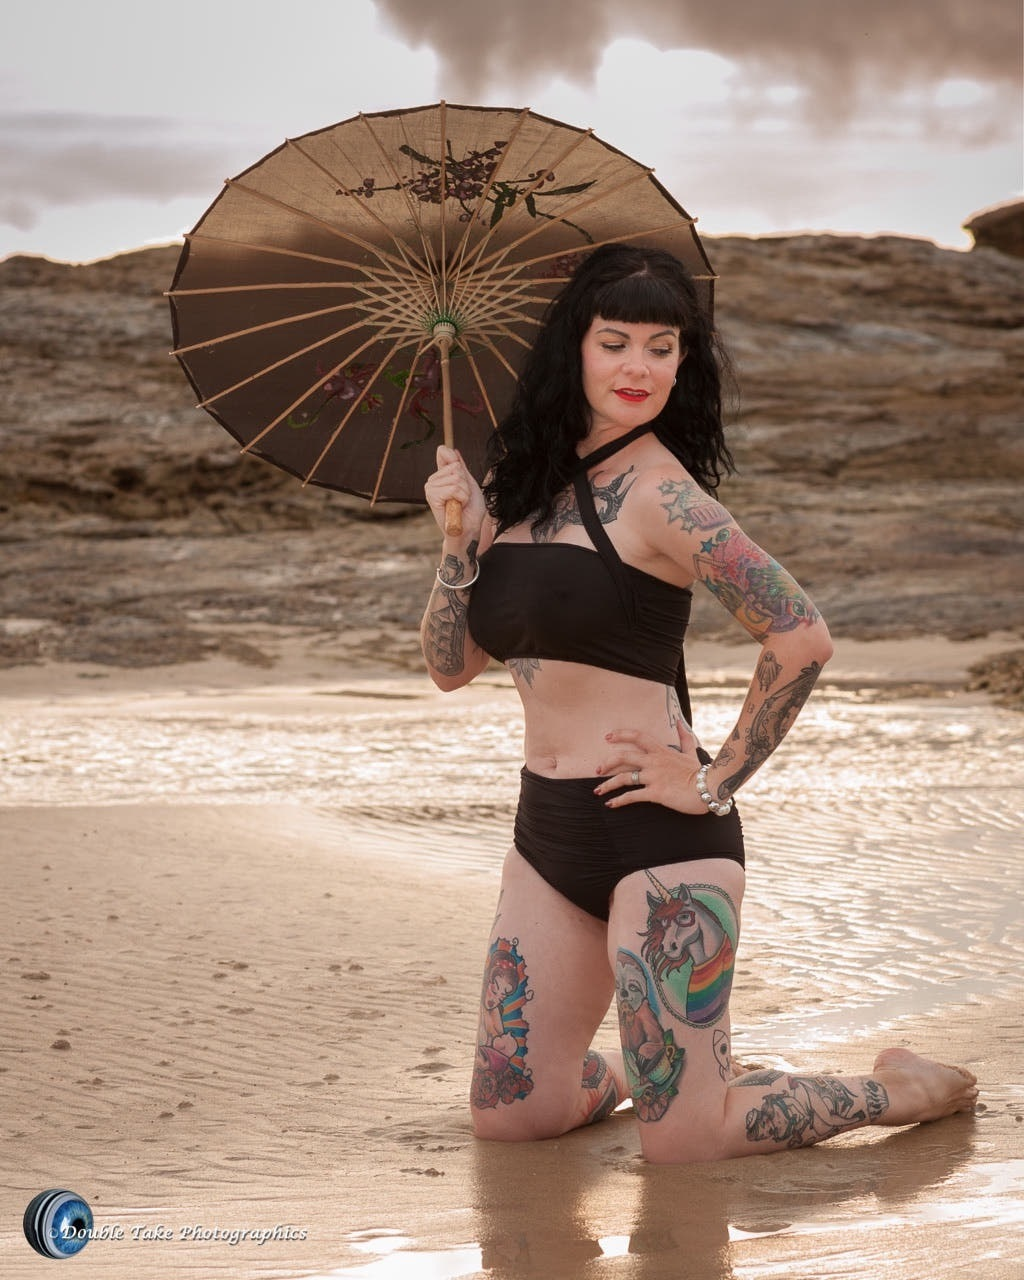 Kitty, the parasol and the unicorn  by Double Take Photographics